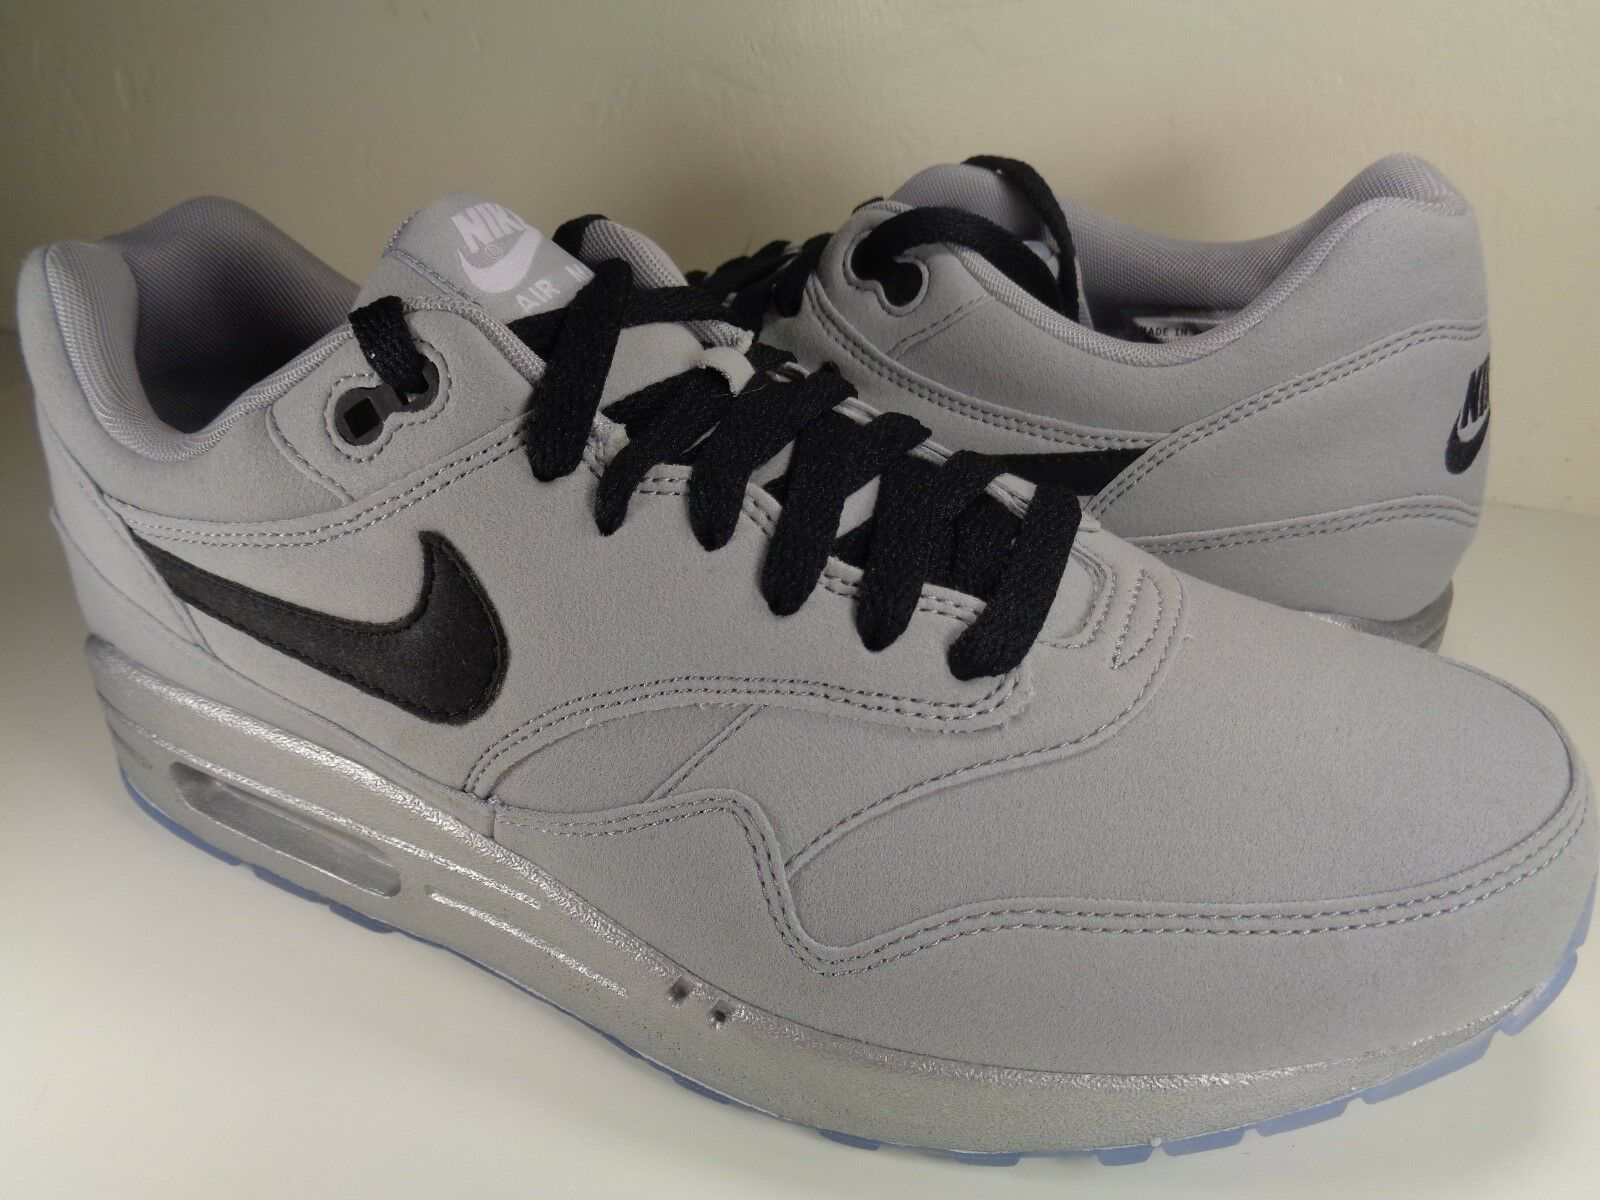 Nike Air Max 1 Premium iD Grey Black Silver Suede Price reduction Cheap and beautiful fashion